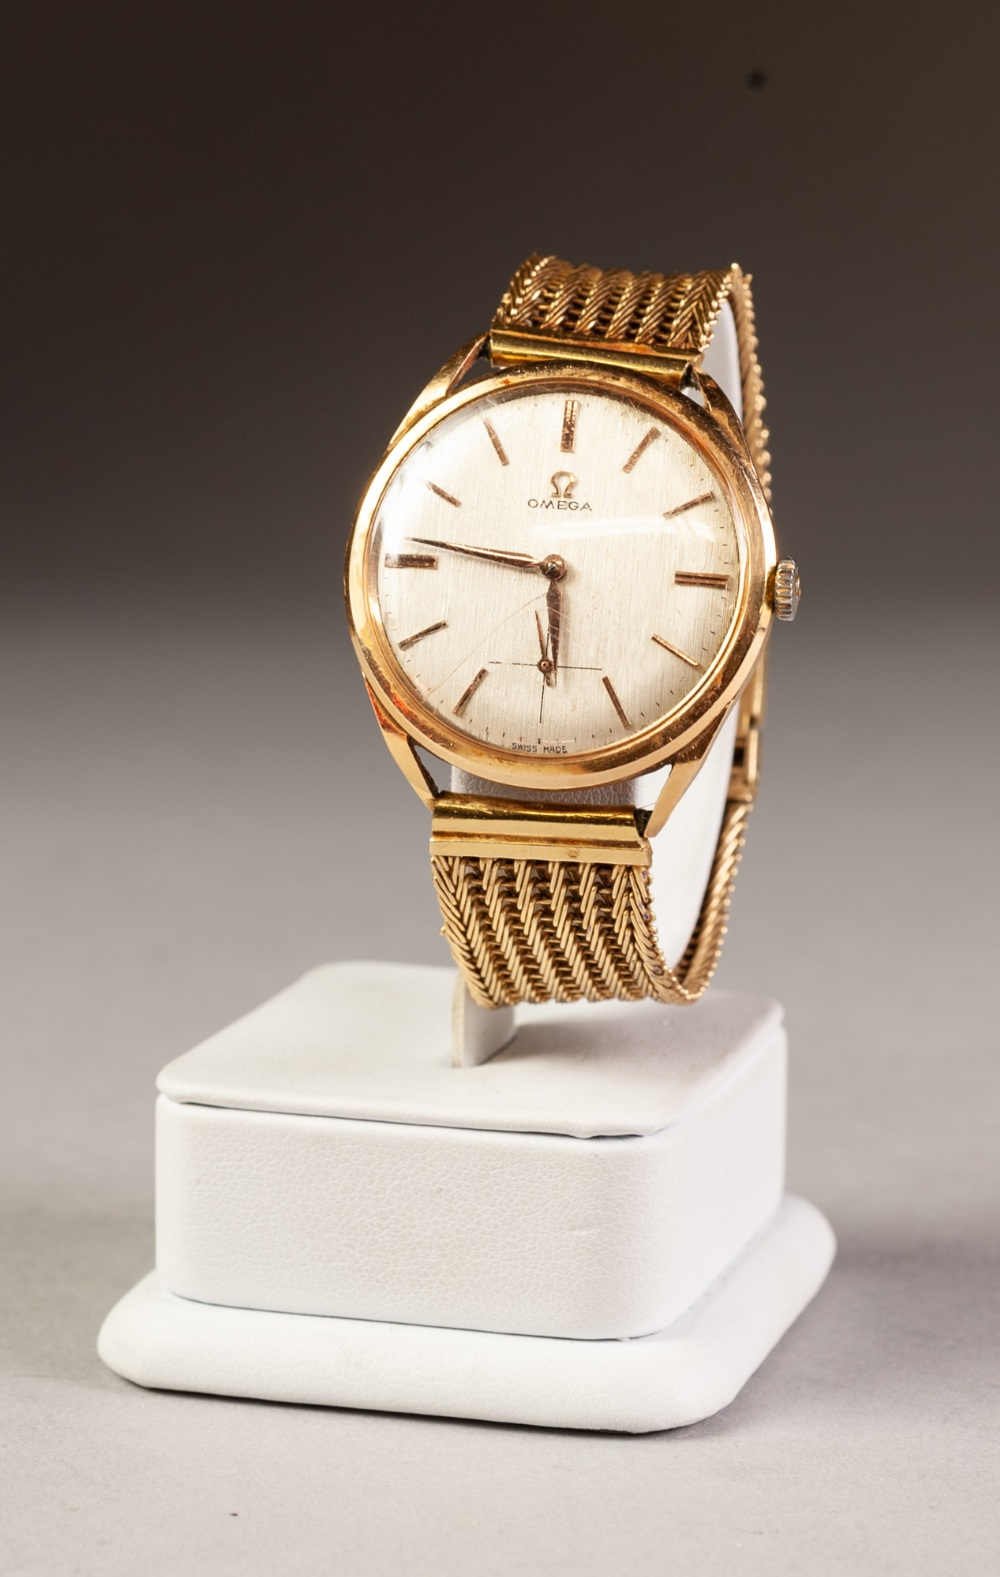 Lot 7 - OMEGA 18ct GOLD CASED GENTLEMAN'S WRISTWATCH on 18ct gold woven bracelet, 57 gms gross